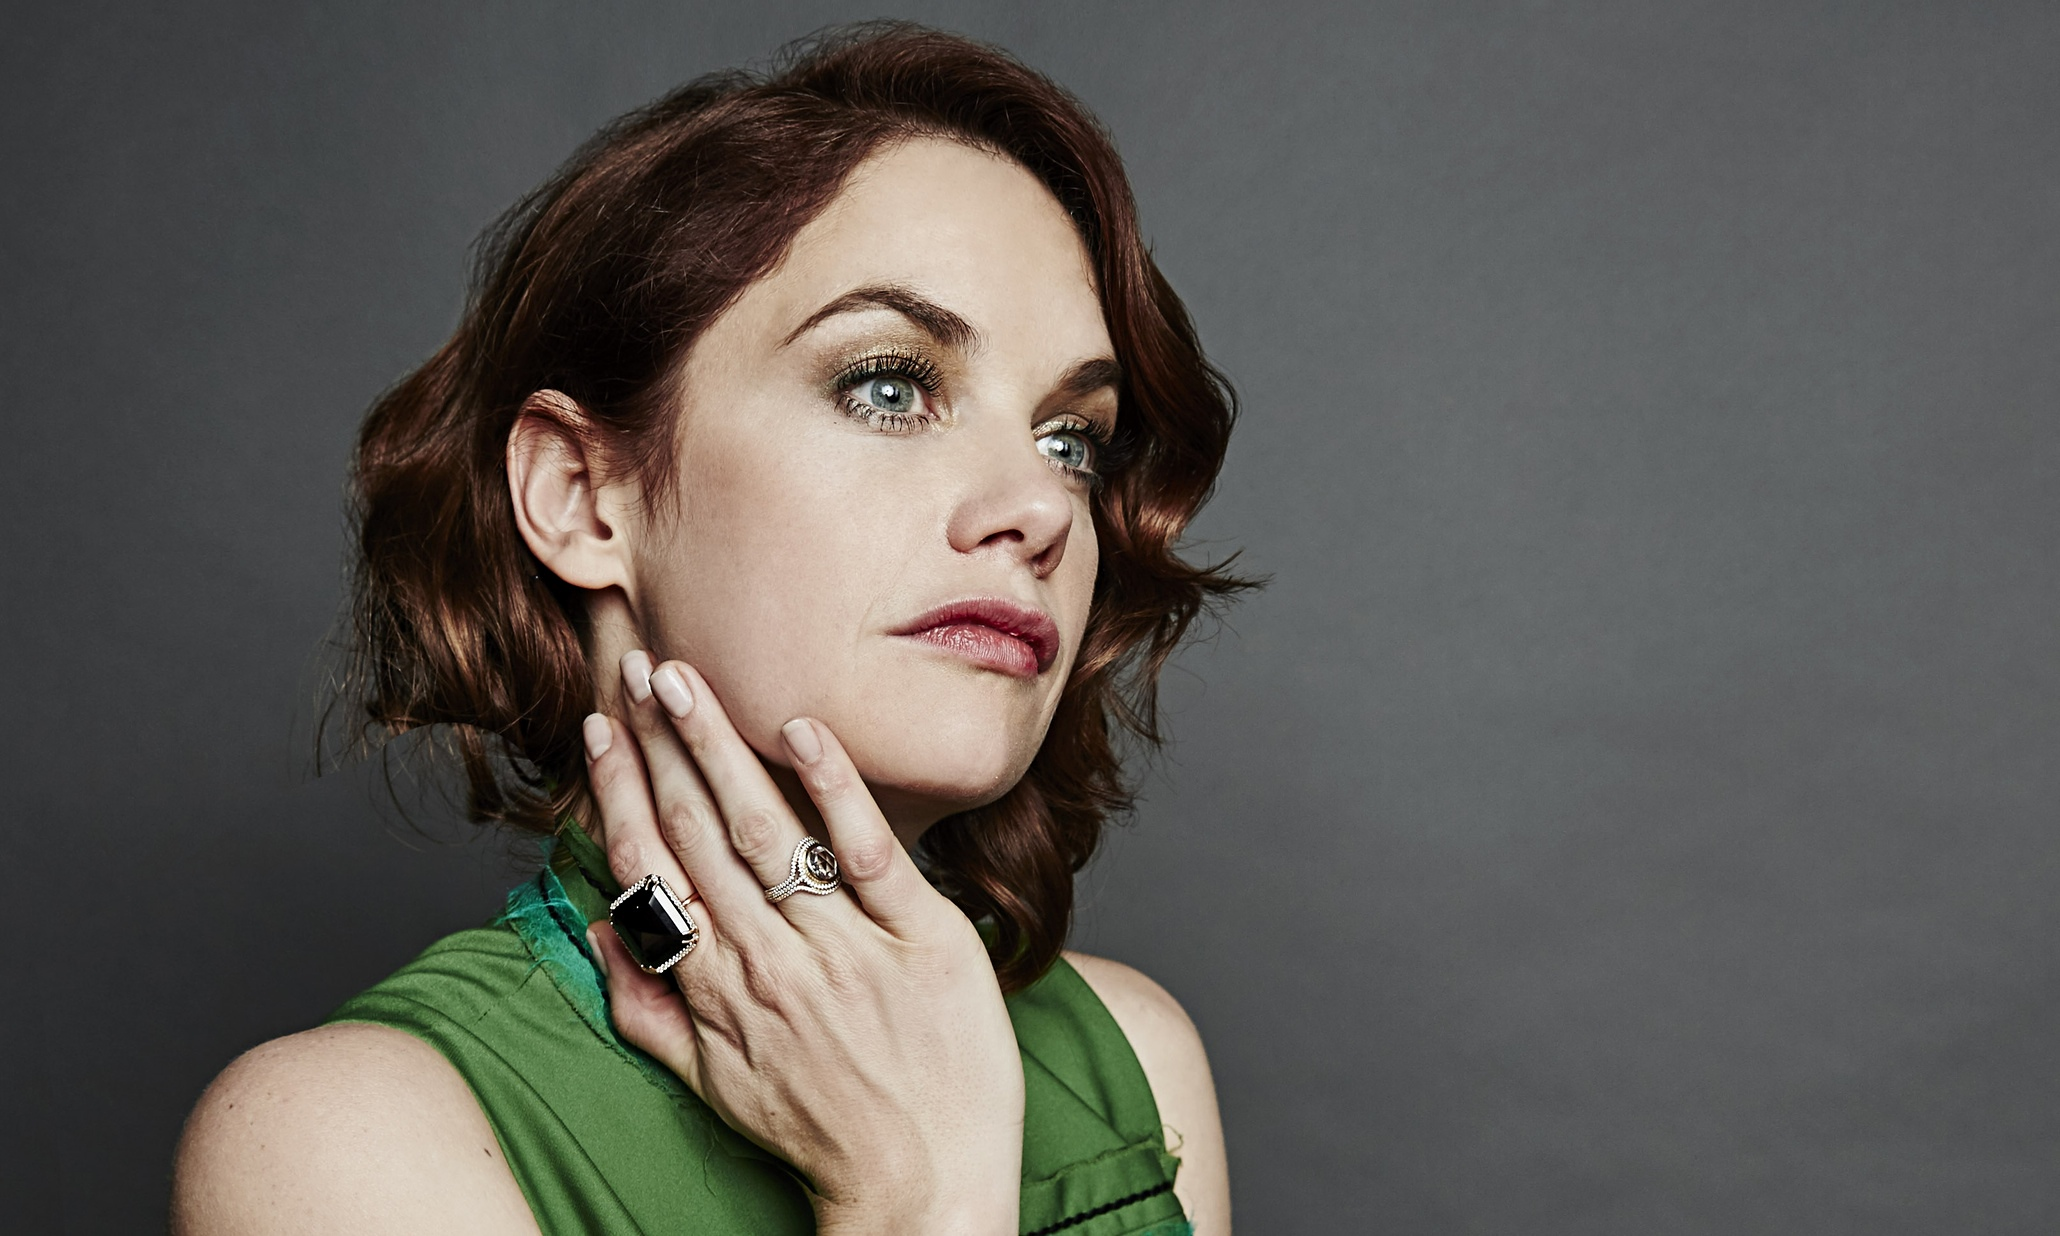 ruth wilson   u2018people know me as my characters  they don u2019t